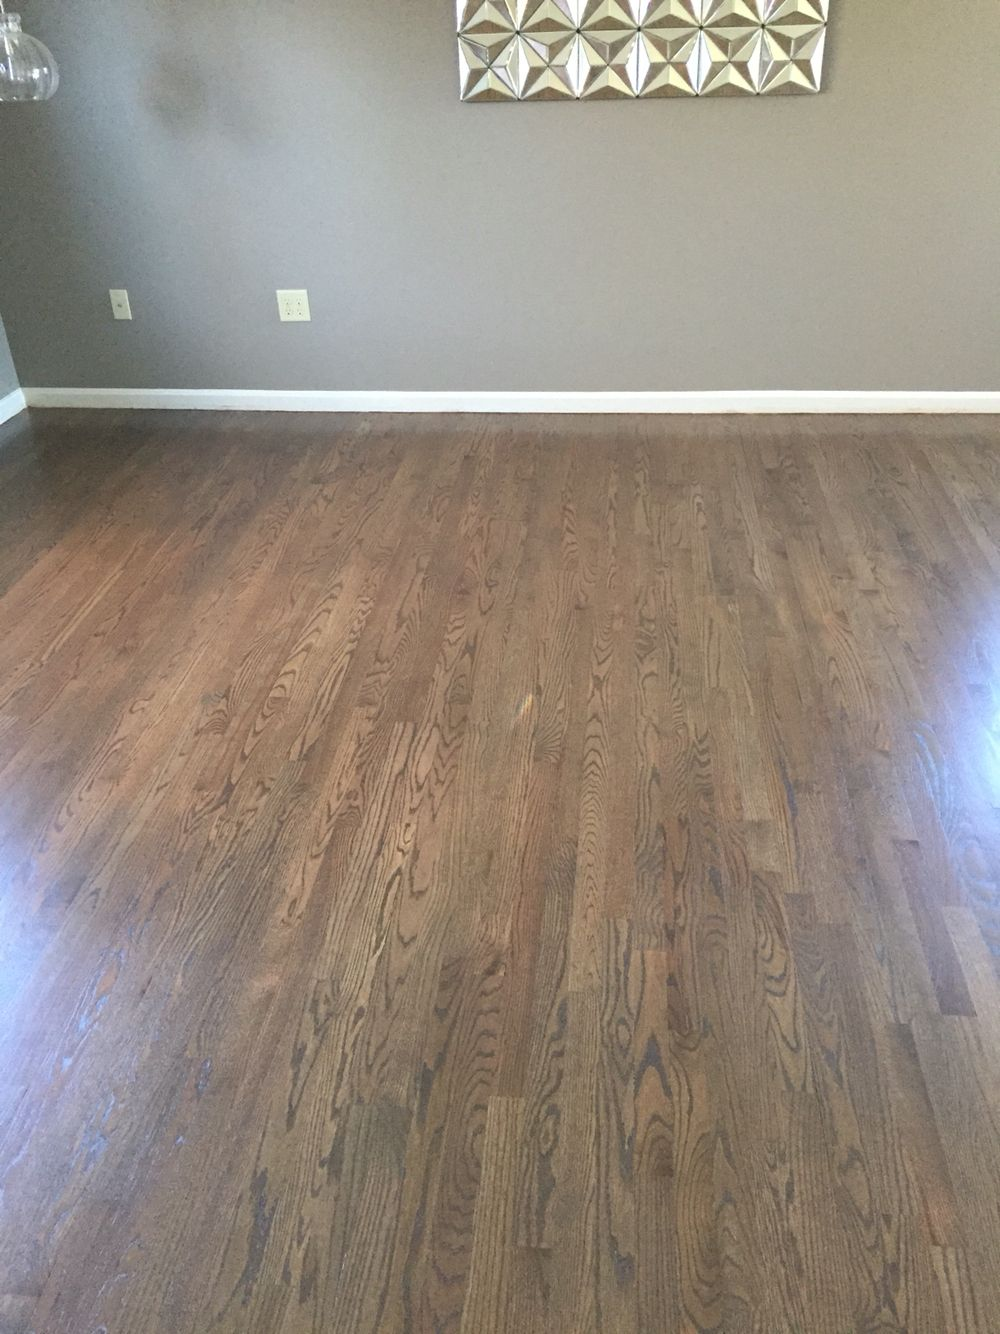 Our Re Finished Wood Floors We Created A Stain Using 3 4 Classic Gray By Minwax And 1 4 Mocha By Z Hardwood Floor Colors Classic Wood Floors Wood Floor Colors